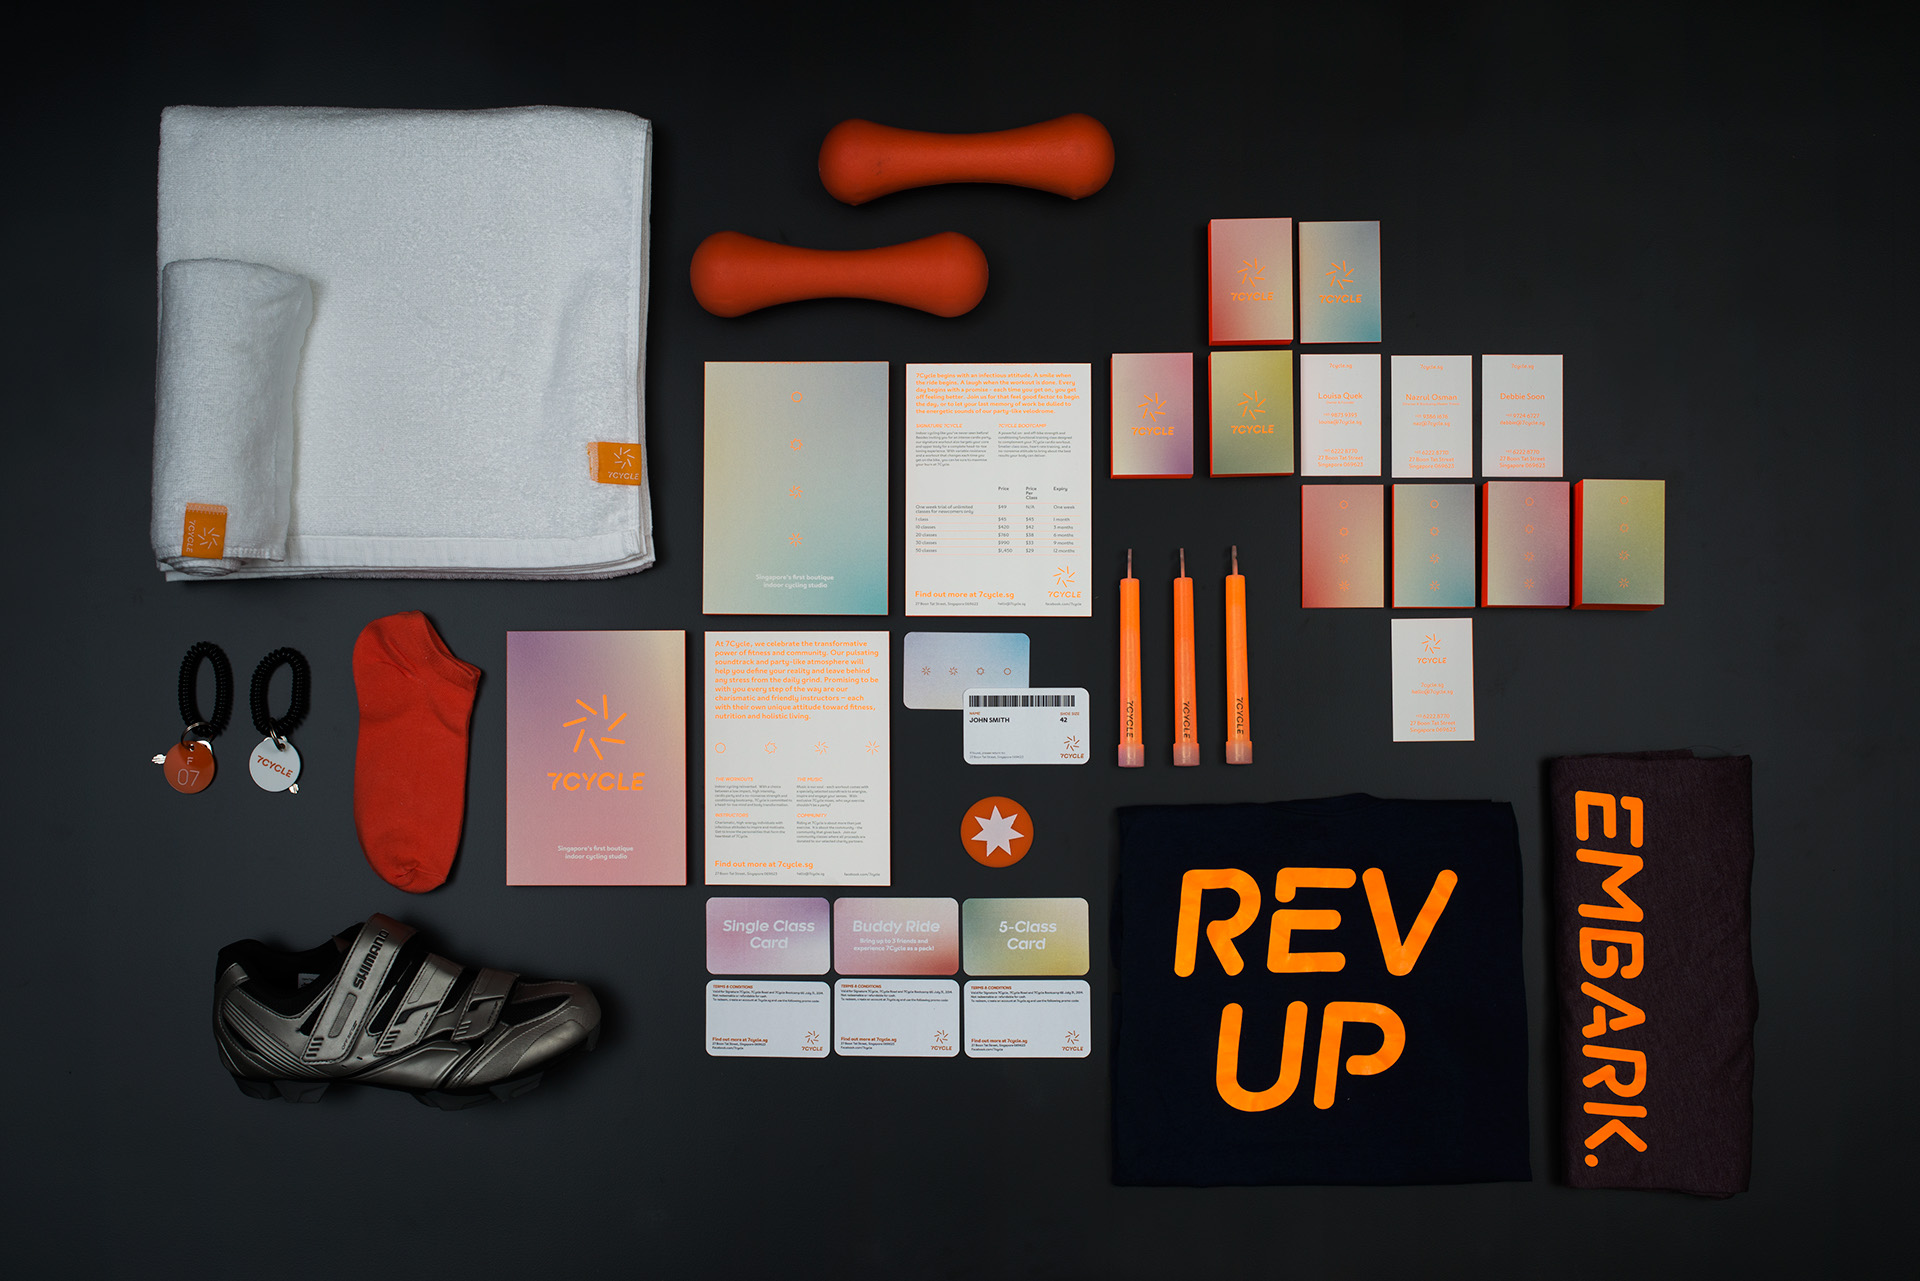 Branding & Visual Identity: 7Cycle